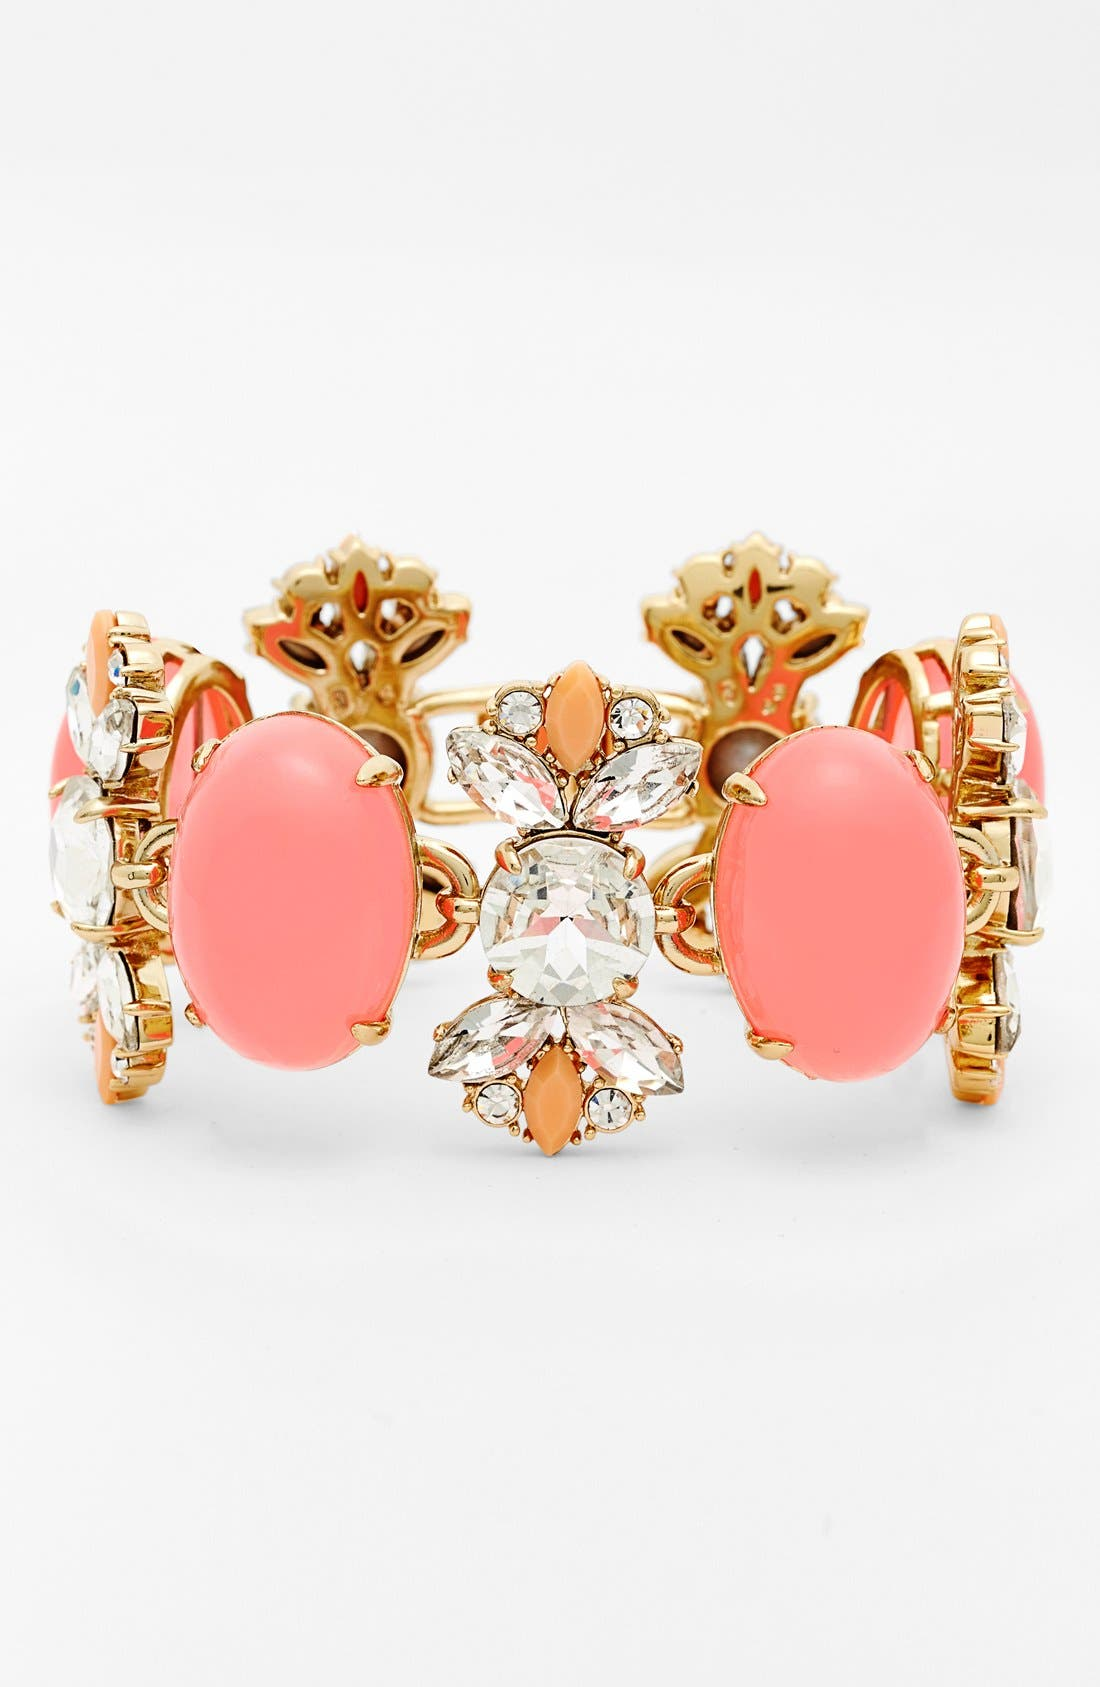 Alternate Image 1 Selected - Juicy Couture 'Haute Hue' Cluster Bracelet